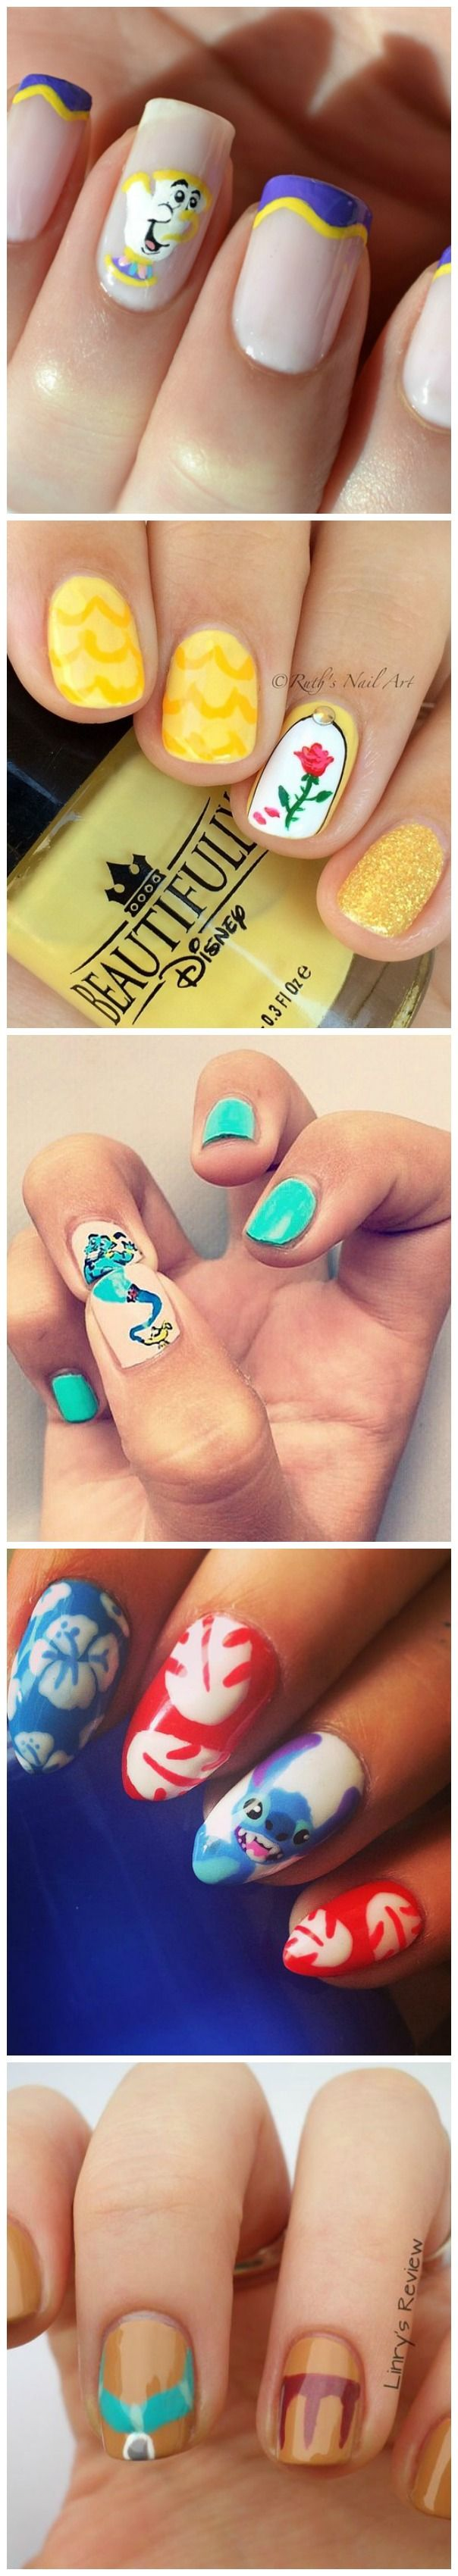 334 best Nails images on Pinterest | Nail design, Nail ideas and ...